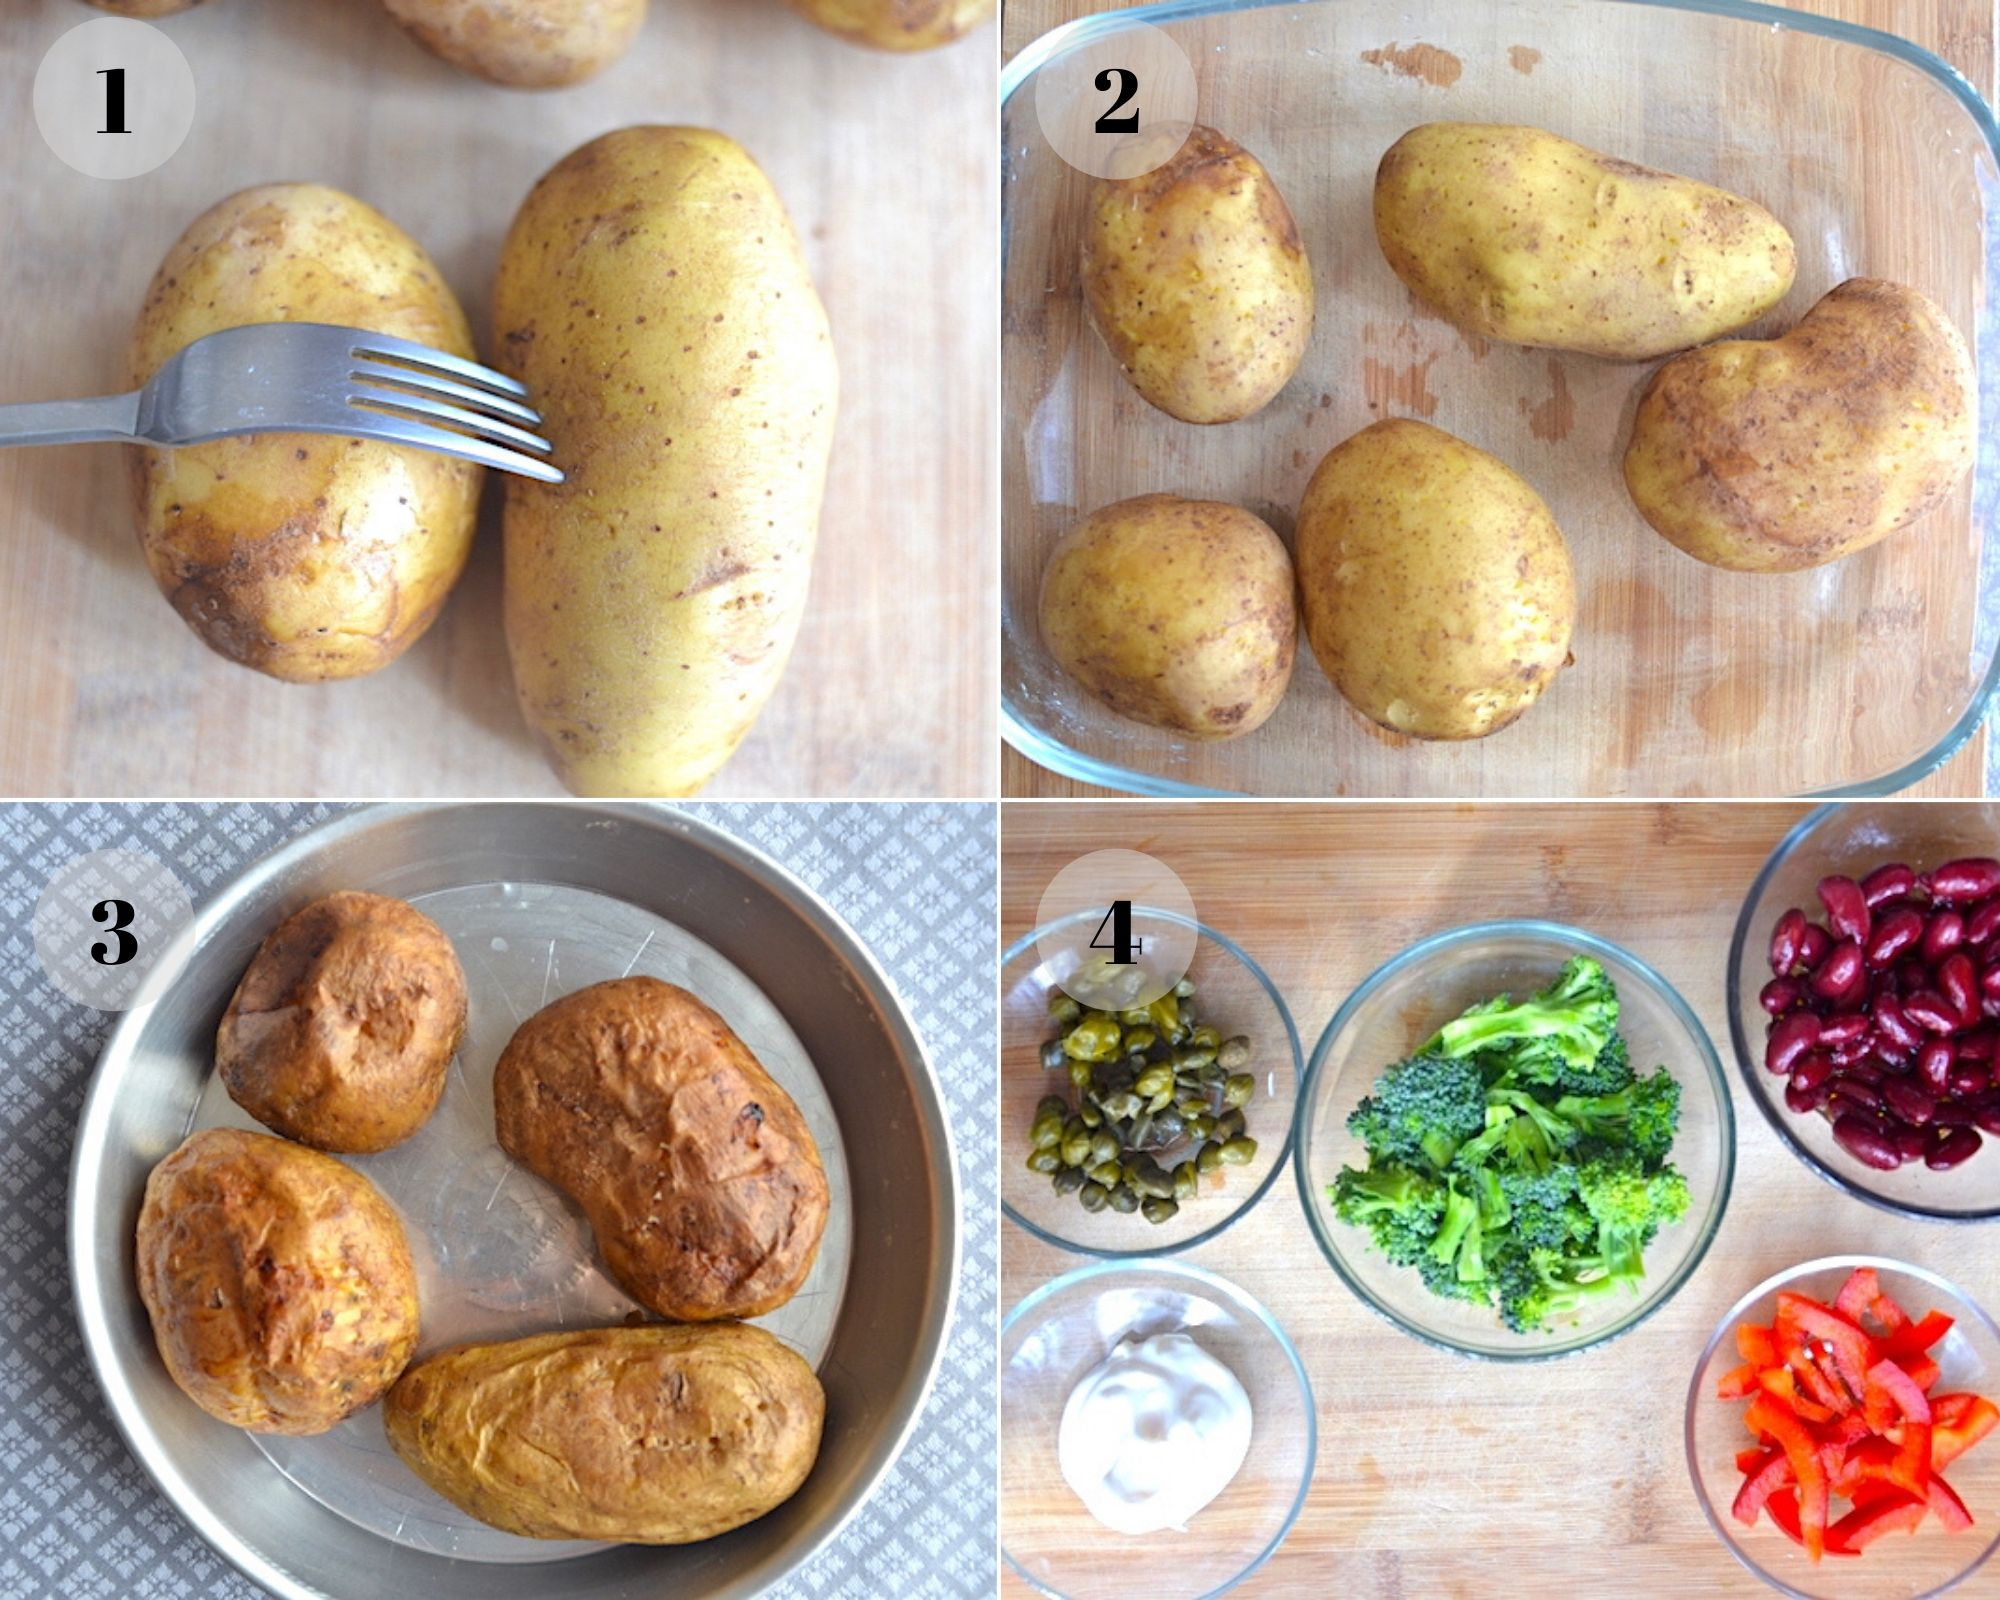 baked potatoes and veggies